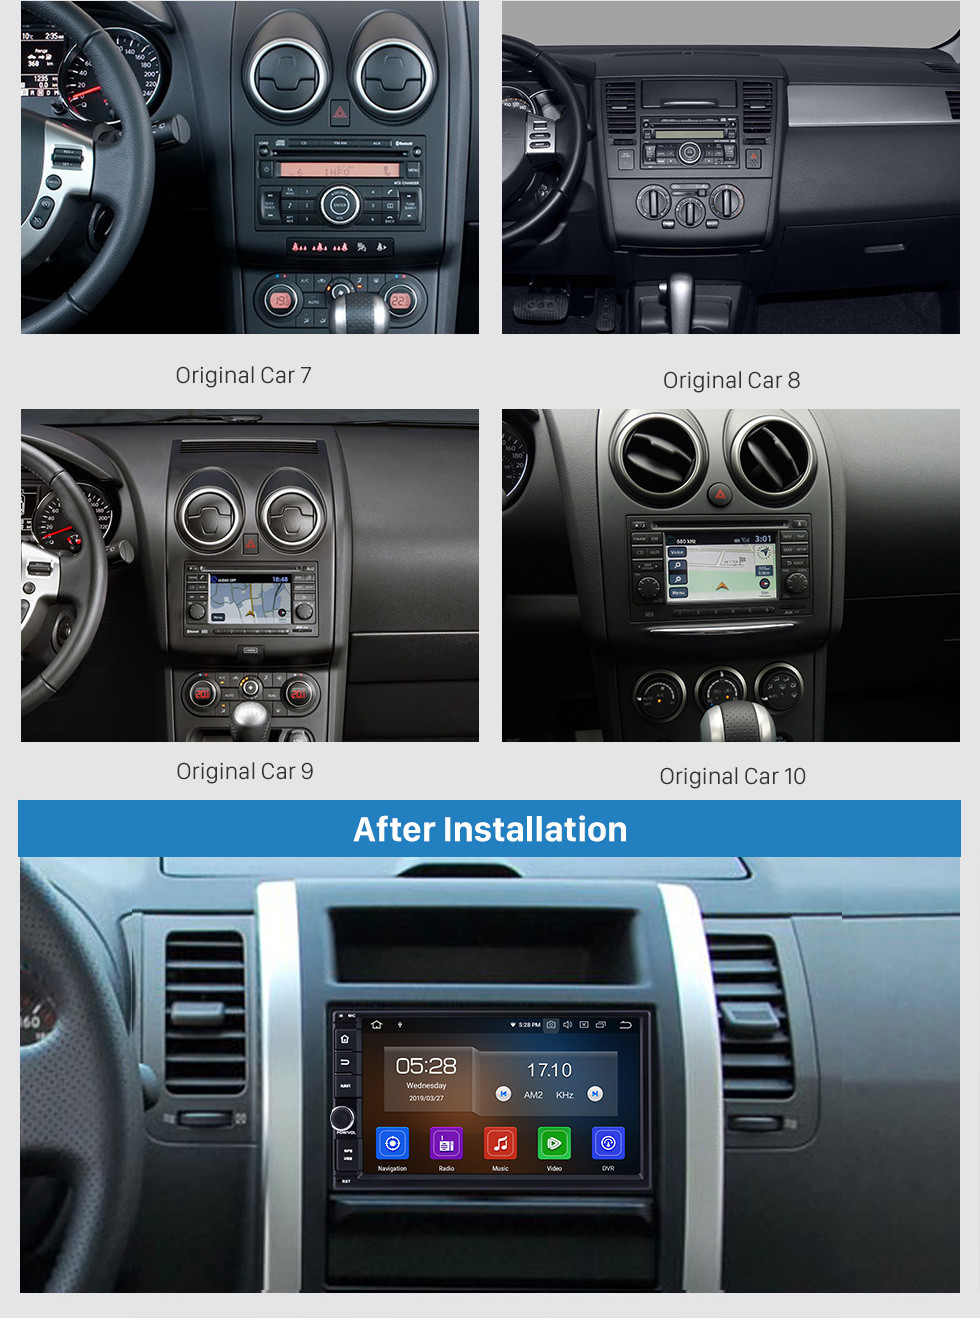 Seicane Hot Selling Android 9.0 2005-2011 Kia rio GPS Navigation Car Audio System Touch Screen AM FM Radio Bluetooth Music 3G WiFi OBD2 Mirror Link AUX Backup Camera USB SD 1080P Video